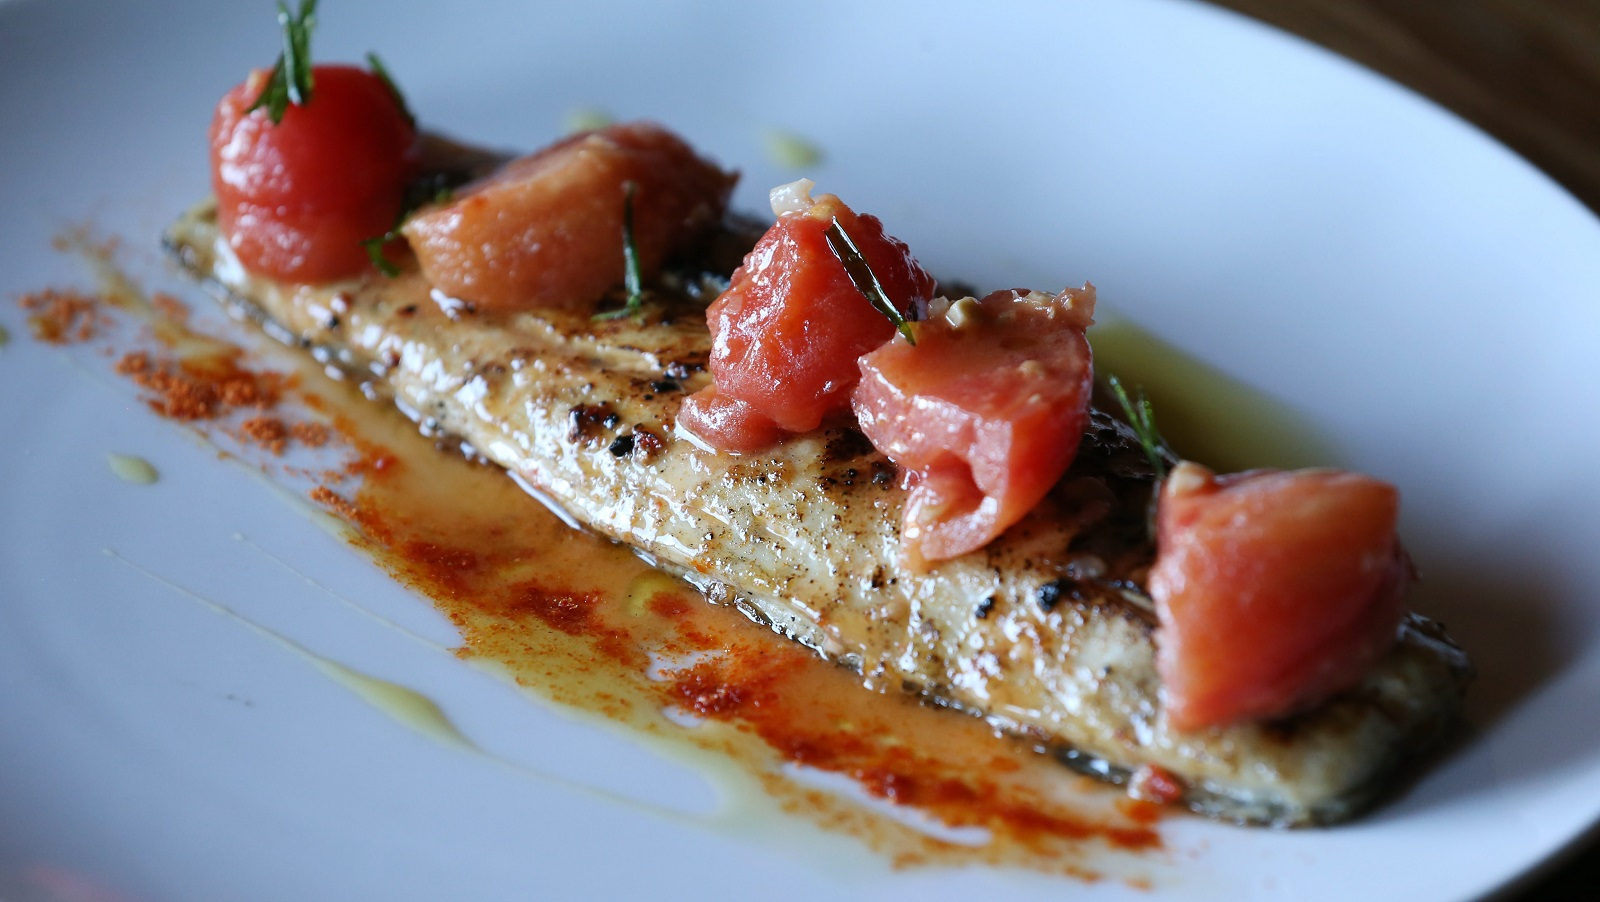 """Toutant's wood-grilled Gulf red drum fish """"on the half shell"""" is topped with a vinaigrette marinade and stewed preserved tomatoes. (Sharon Cantillon/Buffalo News)"""